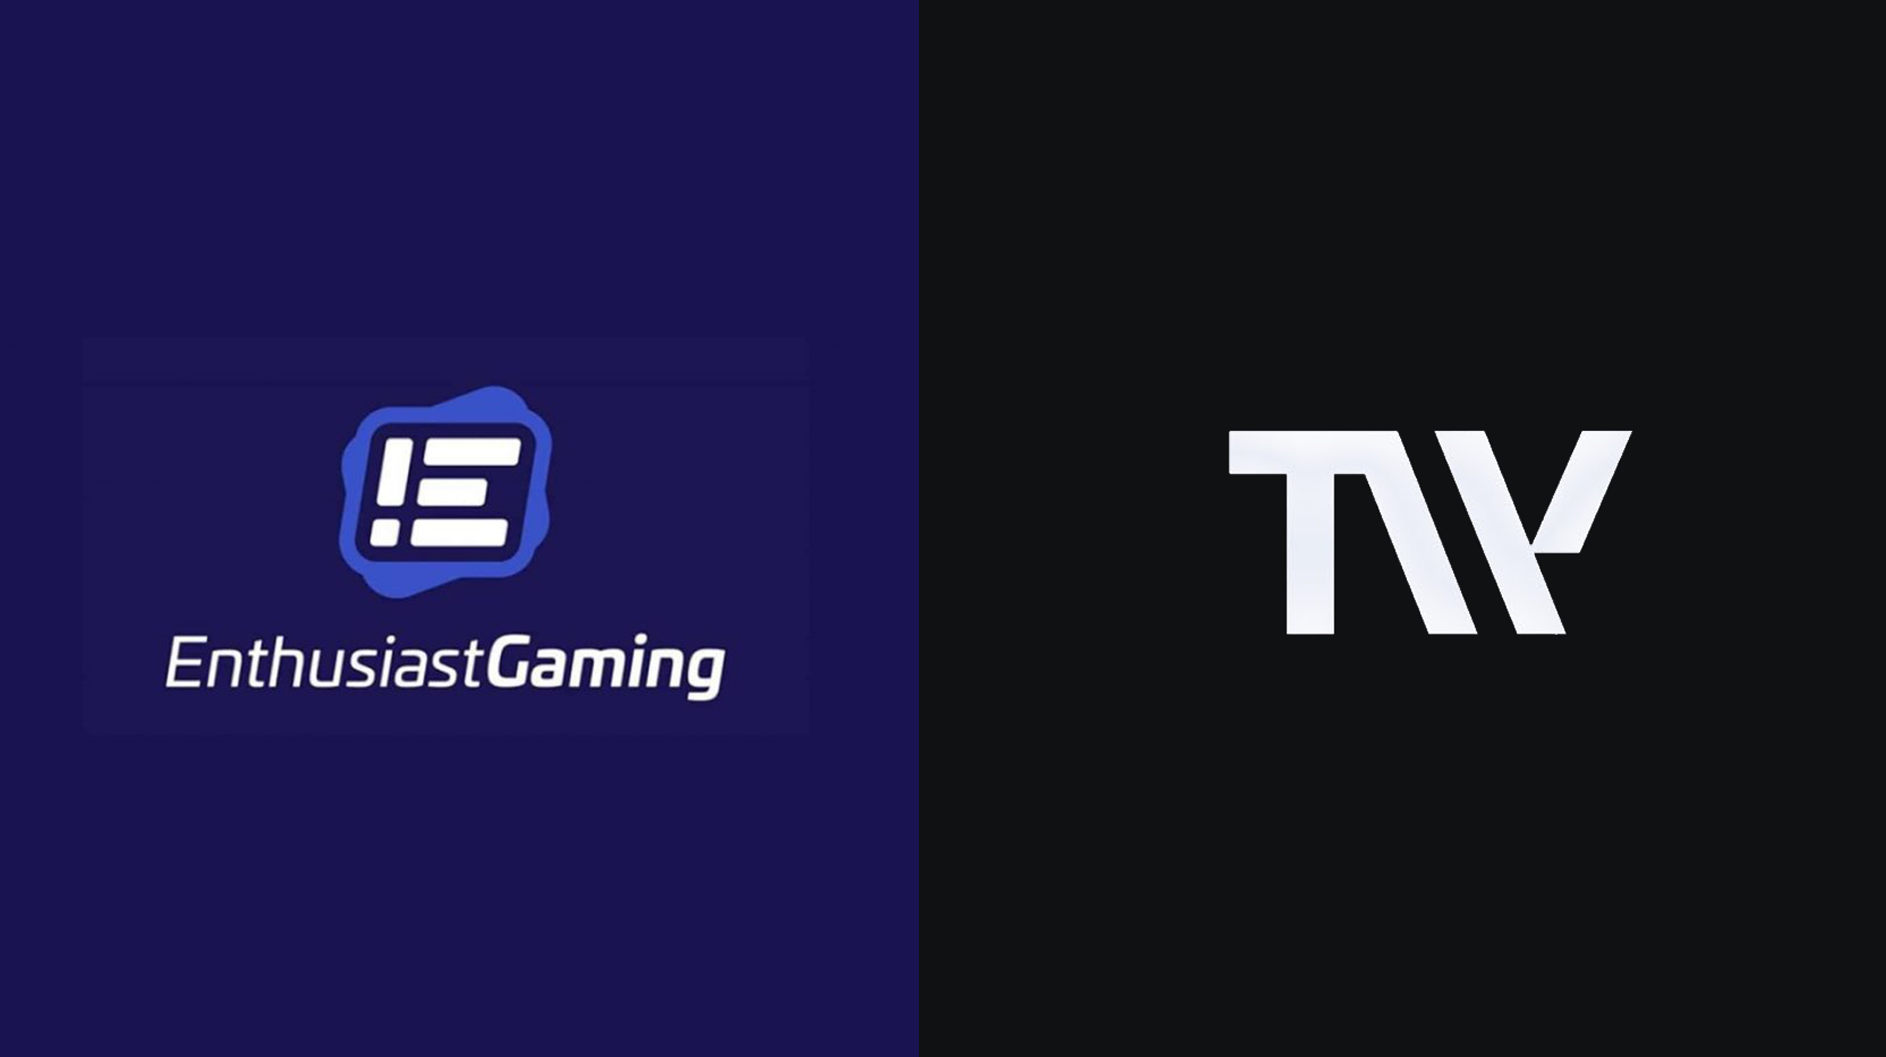 Enthusiast Gaming x Tabwire